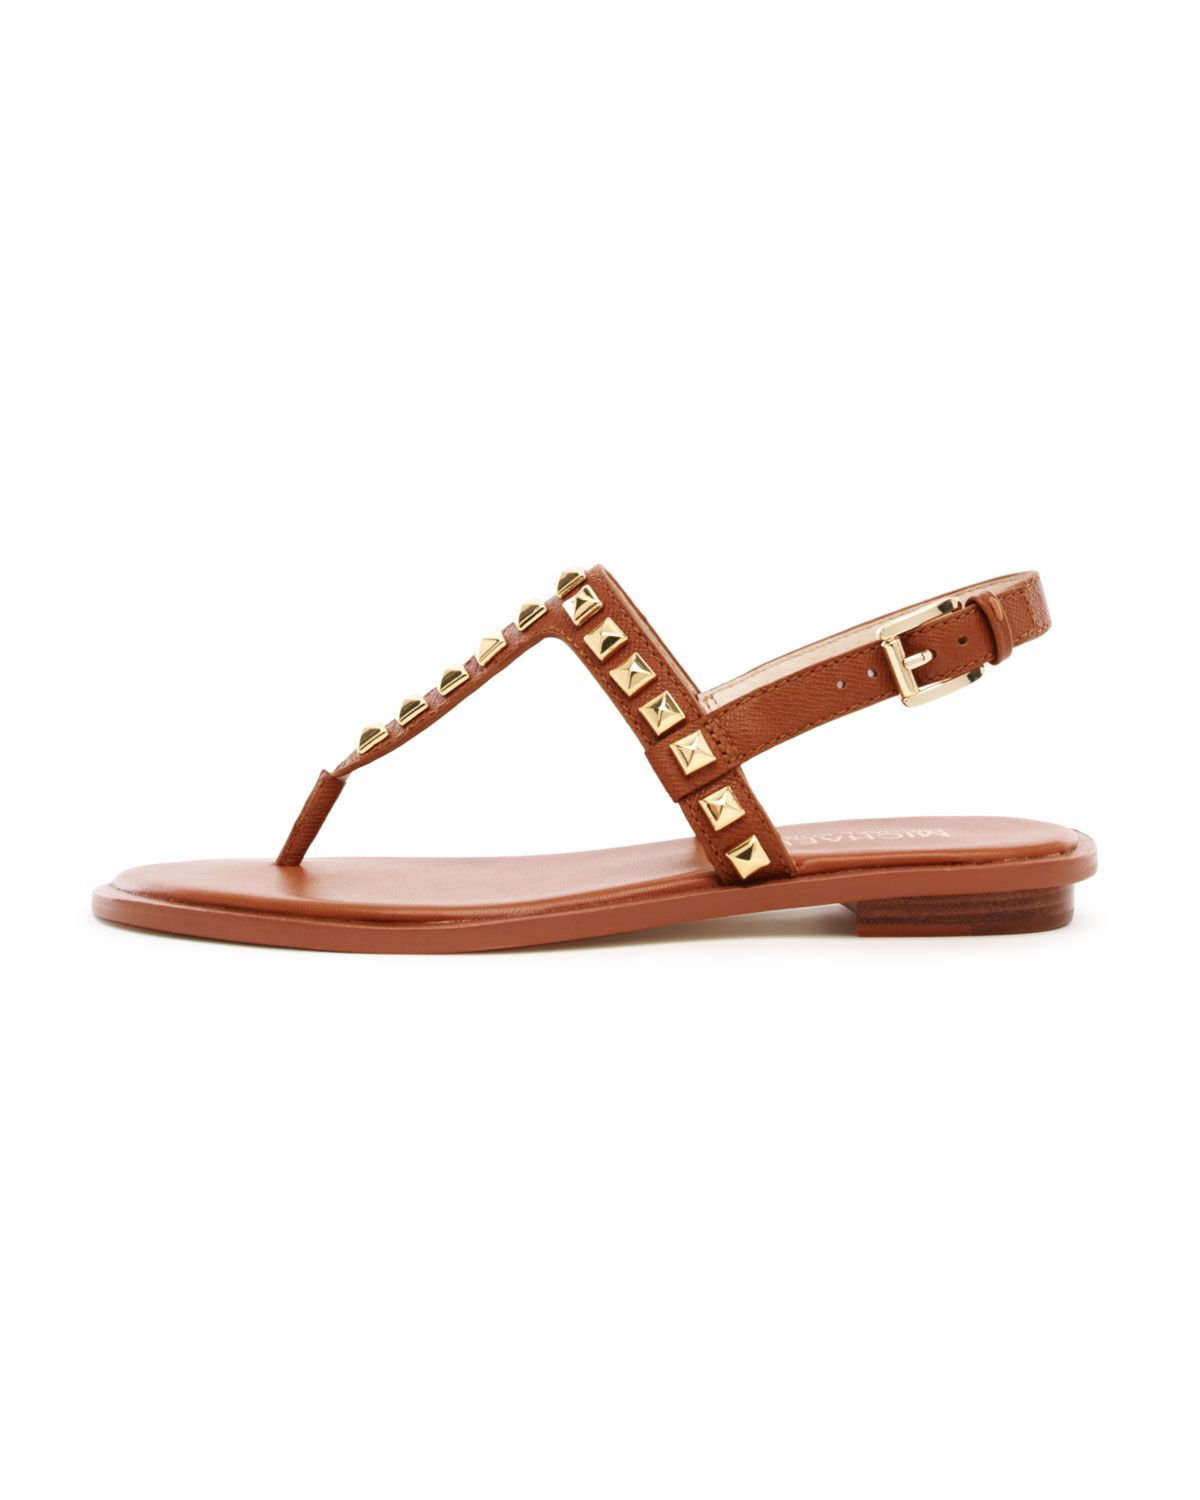 8894b02f7404 Michael By Michael Kors Alexi Studded Flat Sandal in Brown (luggage)